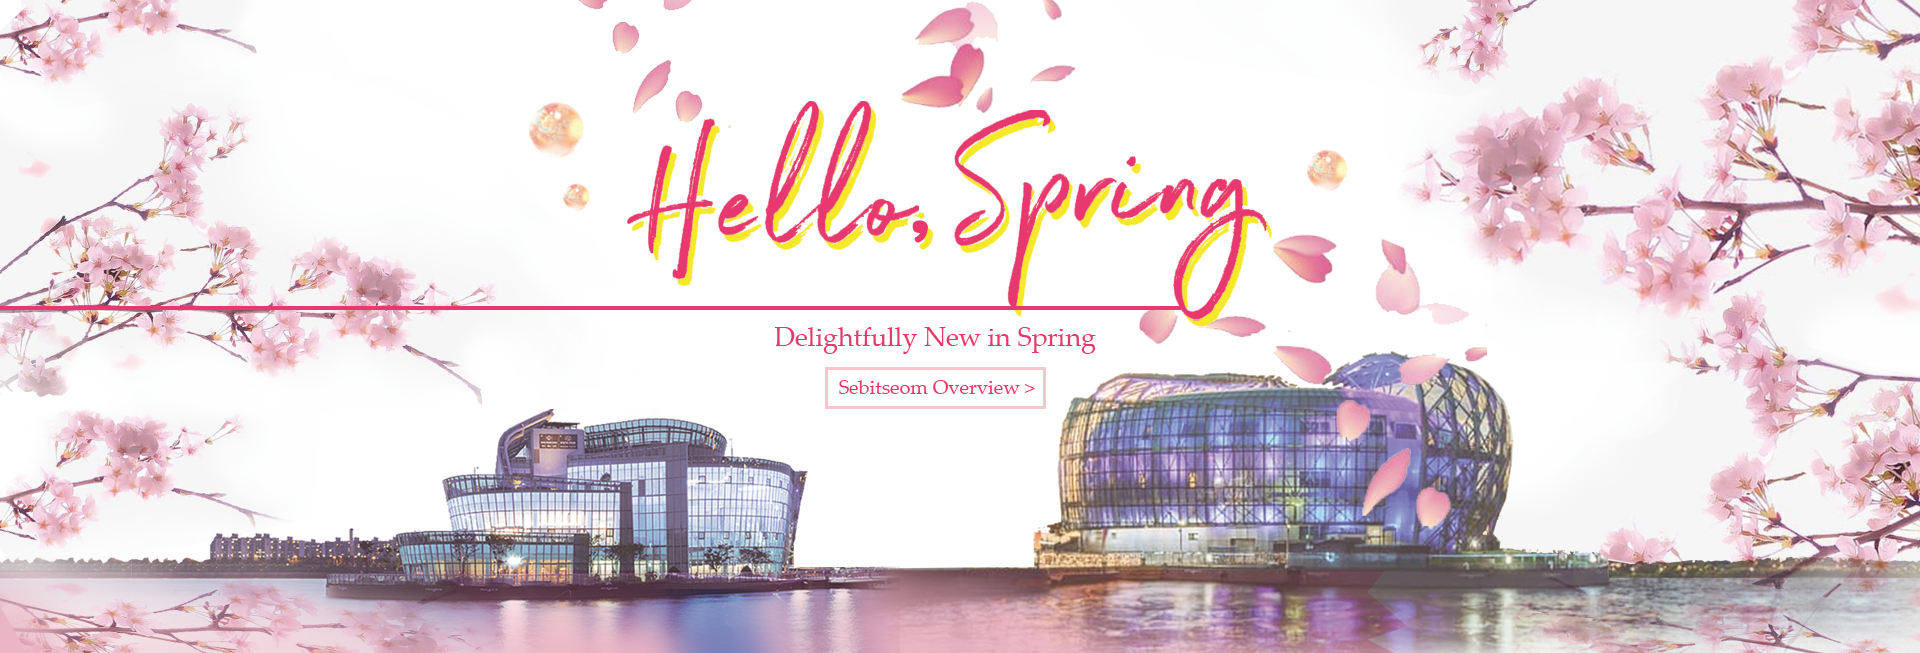 Hello Spring Delightly new in spring